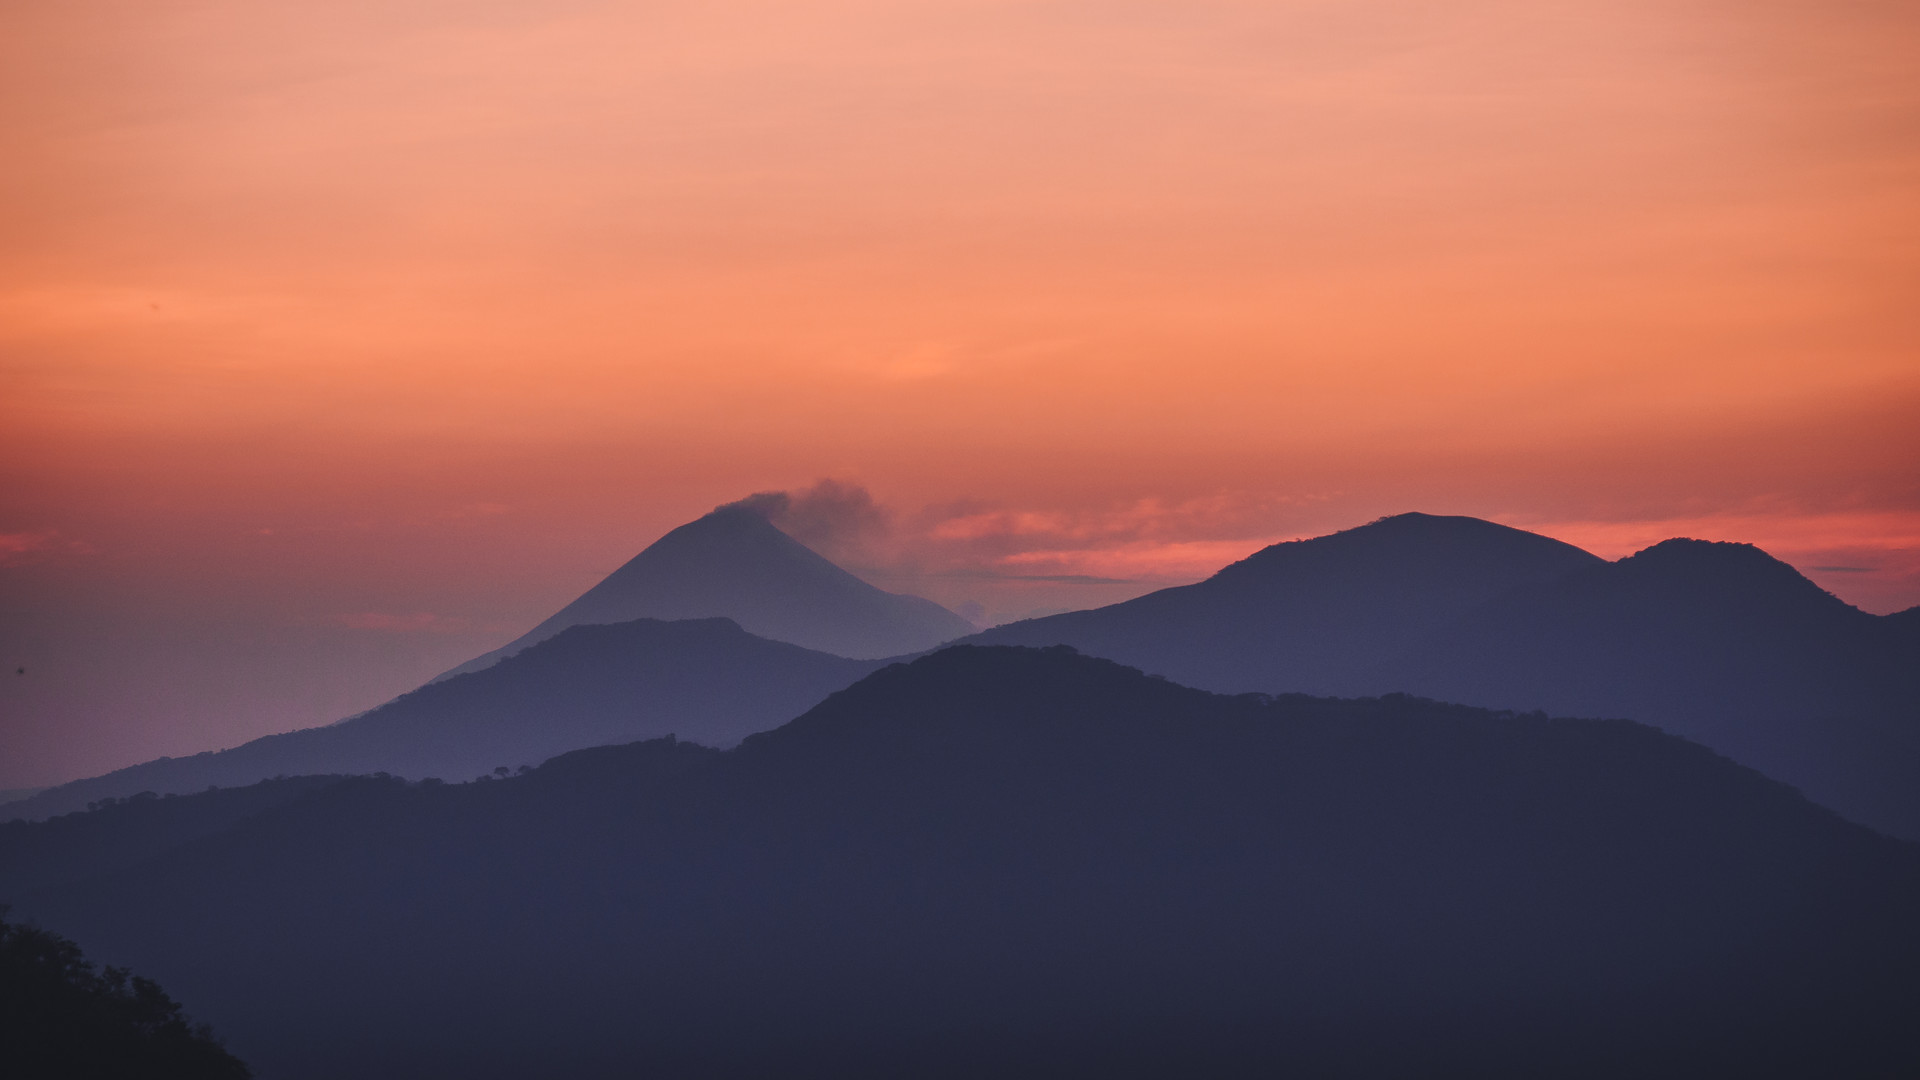 Colorful early morning sky over mountain range in Nicaragua